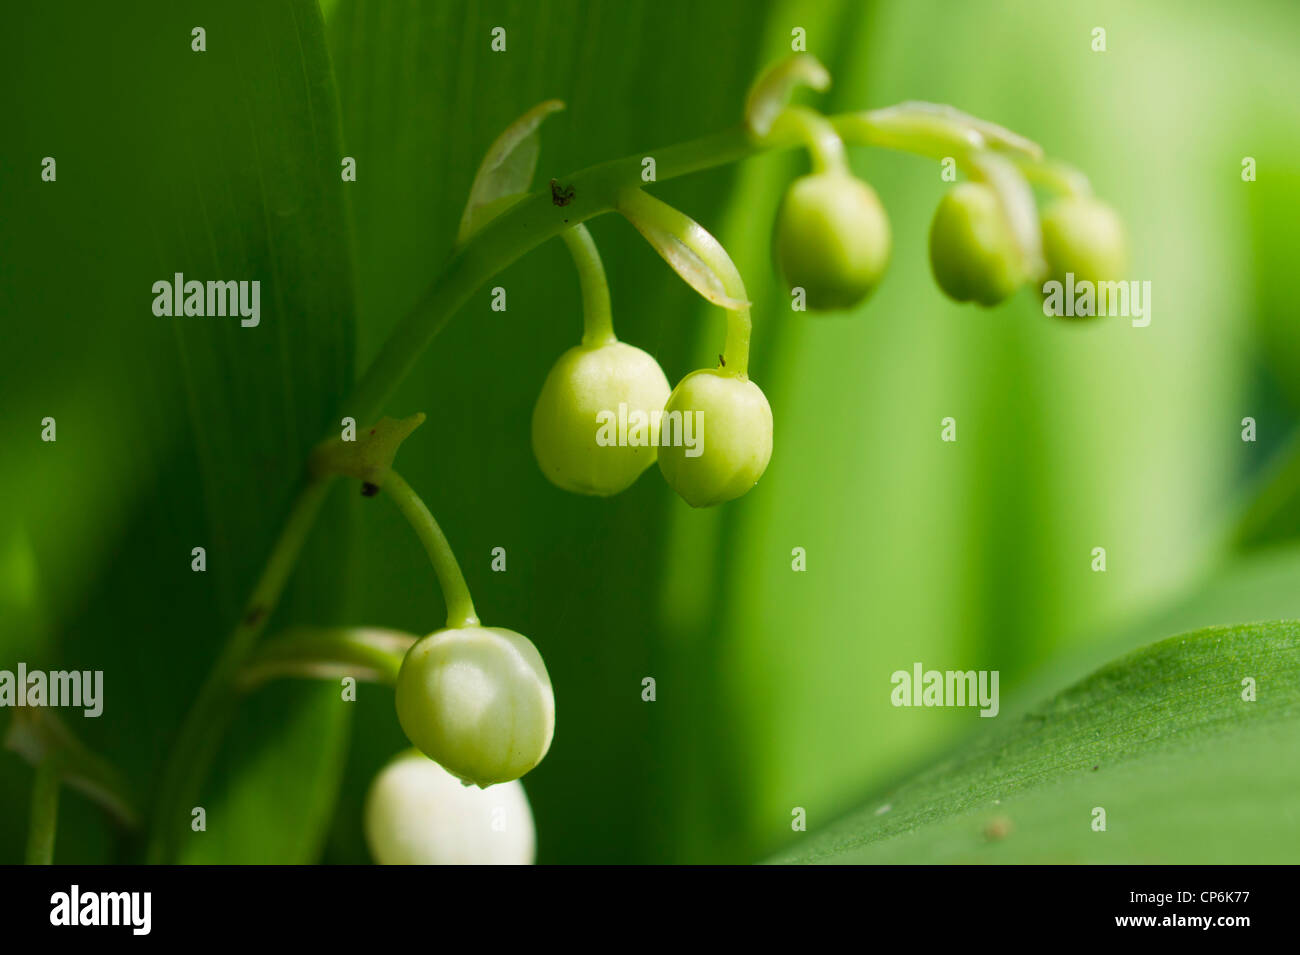 Lily of the valley flower buds stock photo 48089979 alamy lily of the valley flower buds izmirmasajfo